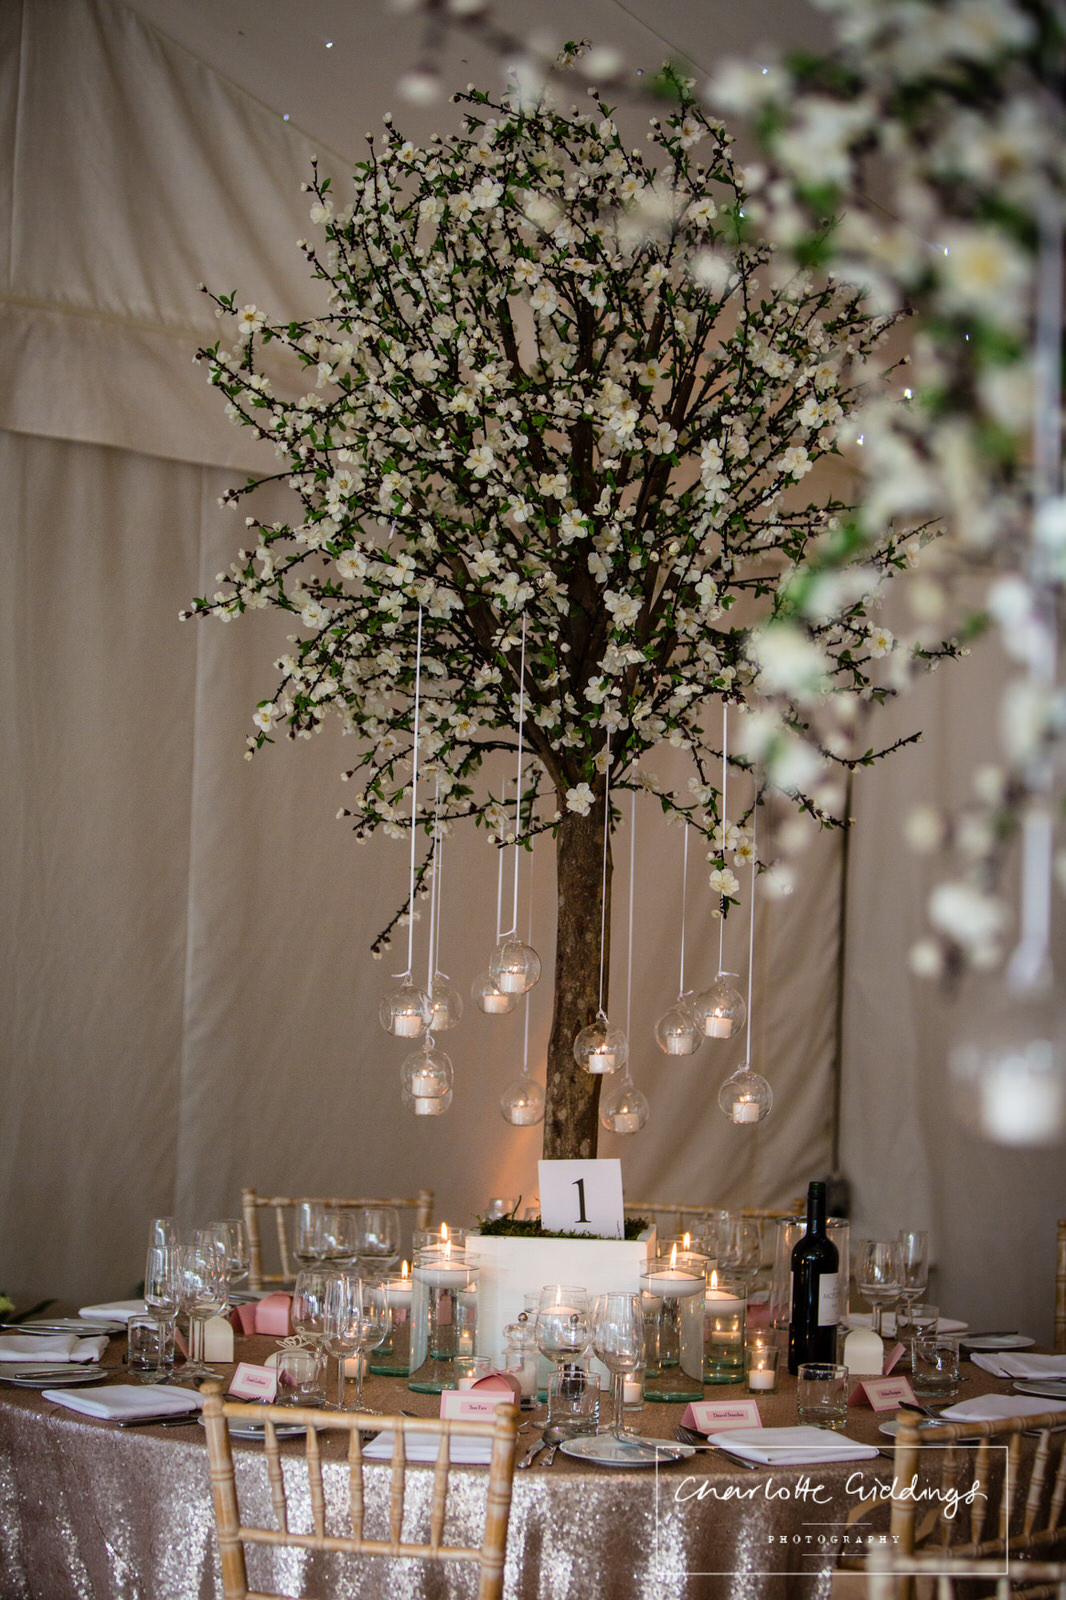 venue dressing - shropshire wedding photographer - wedding supplier